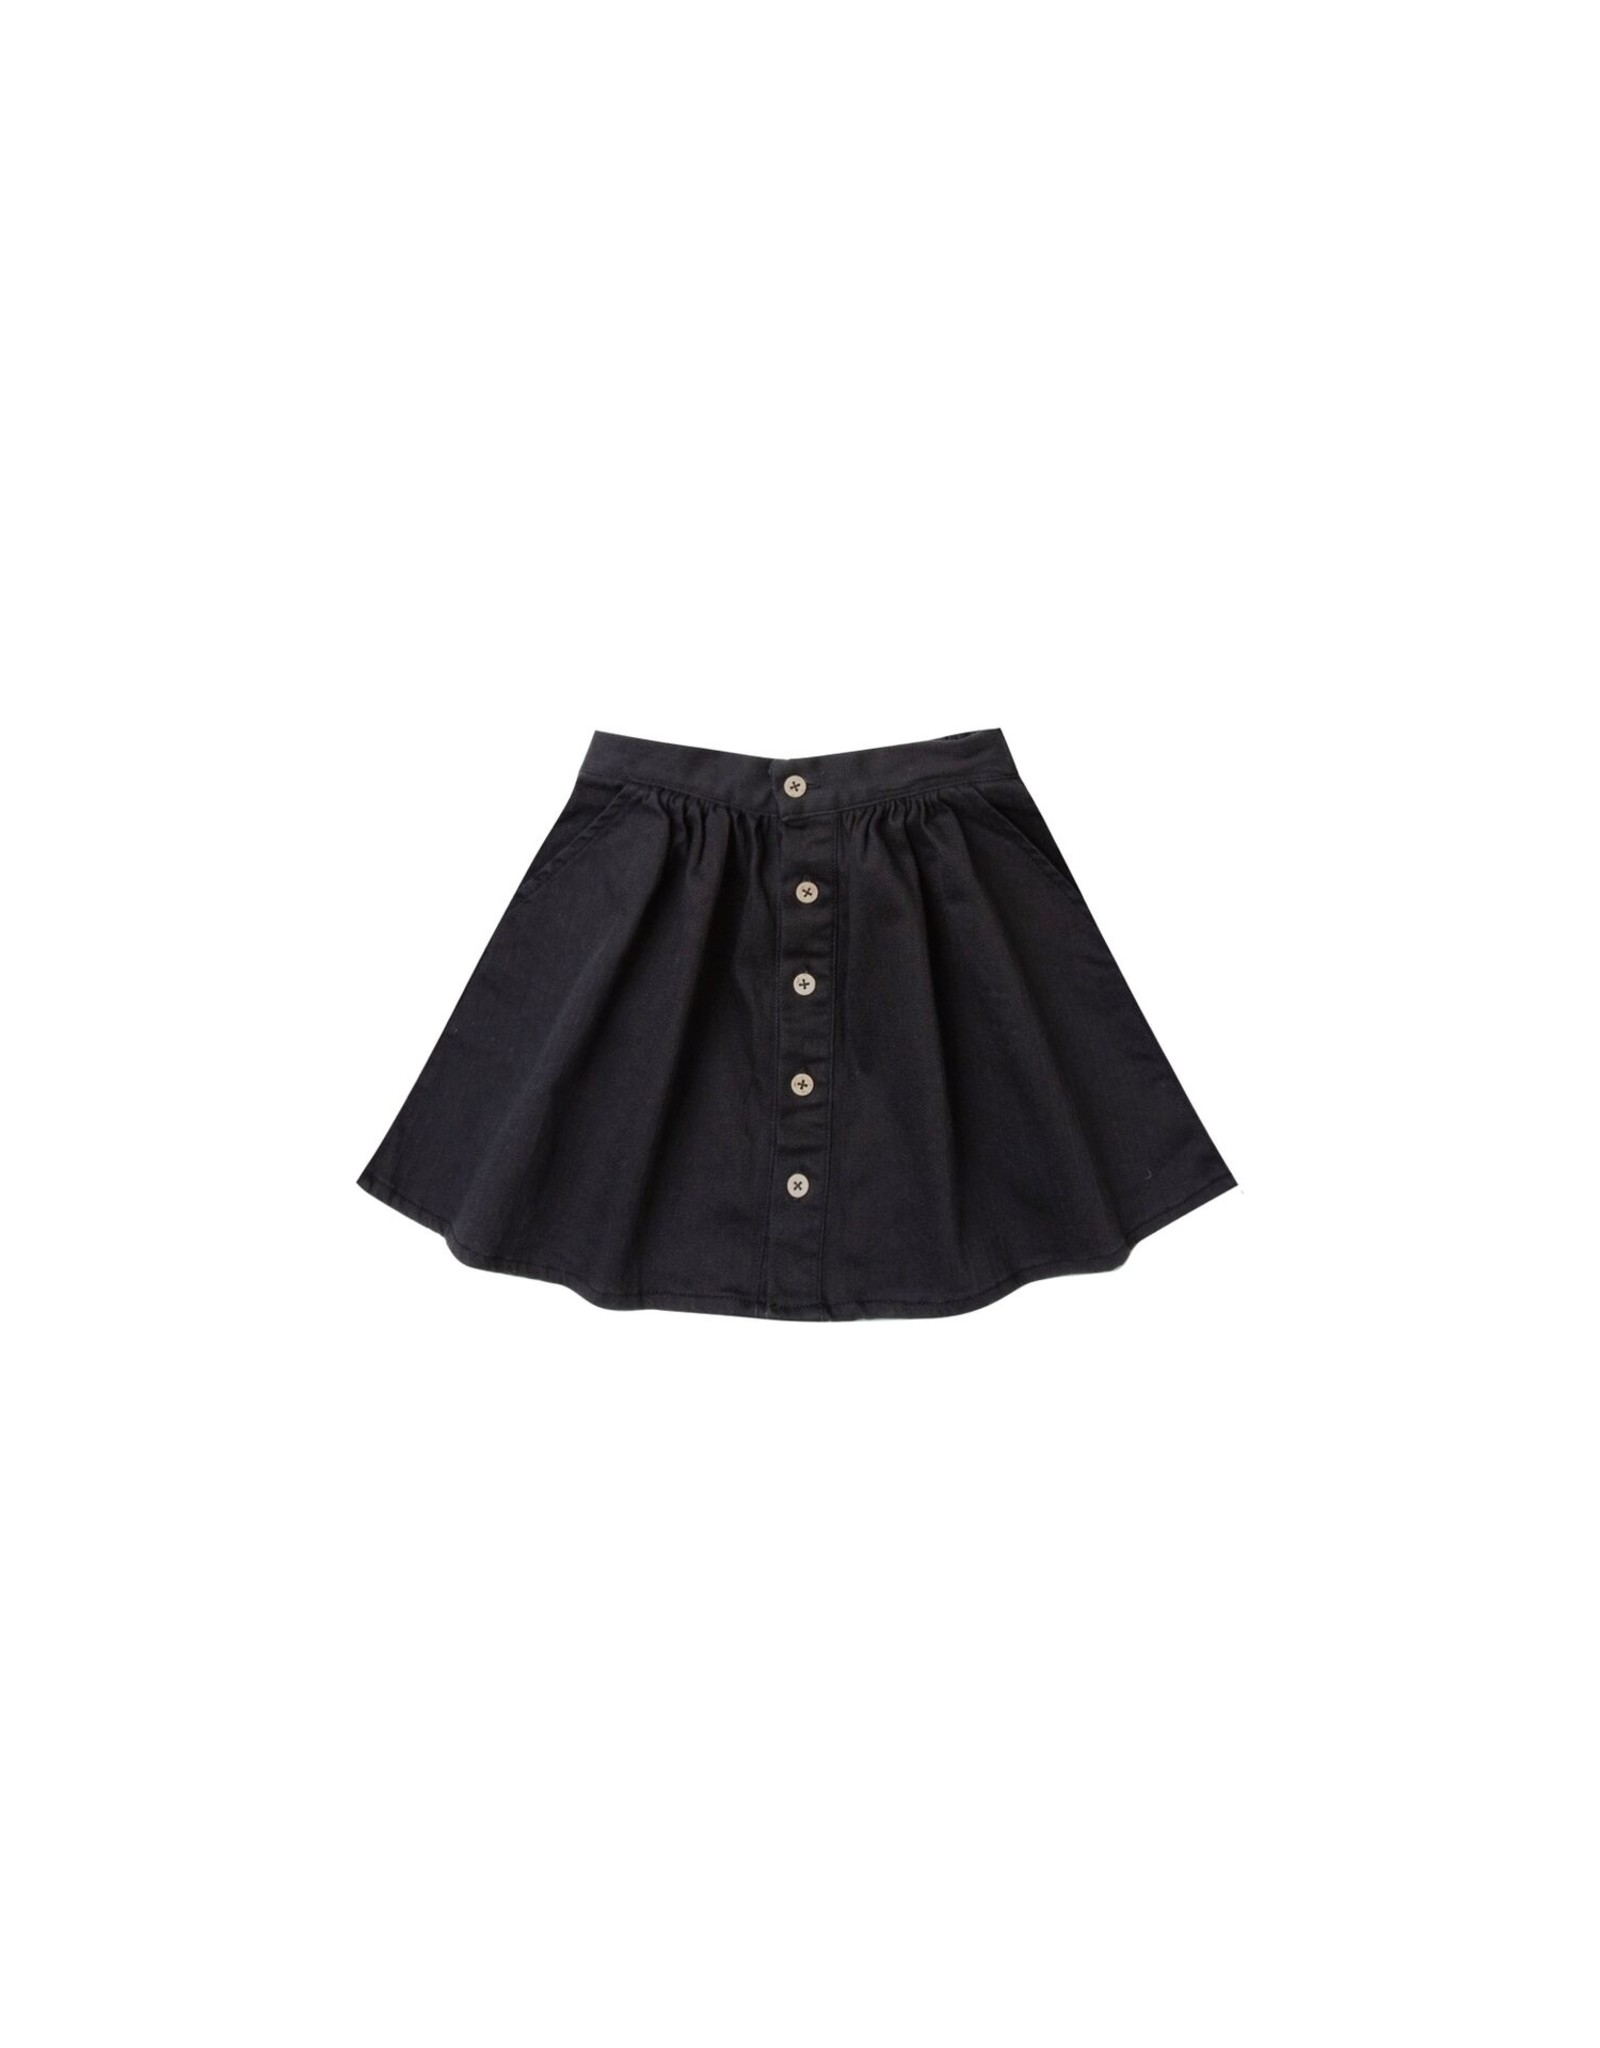 Rylee and Cru button front mini skirt- black